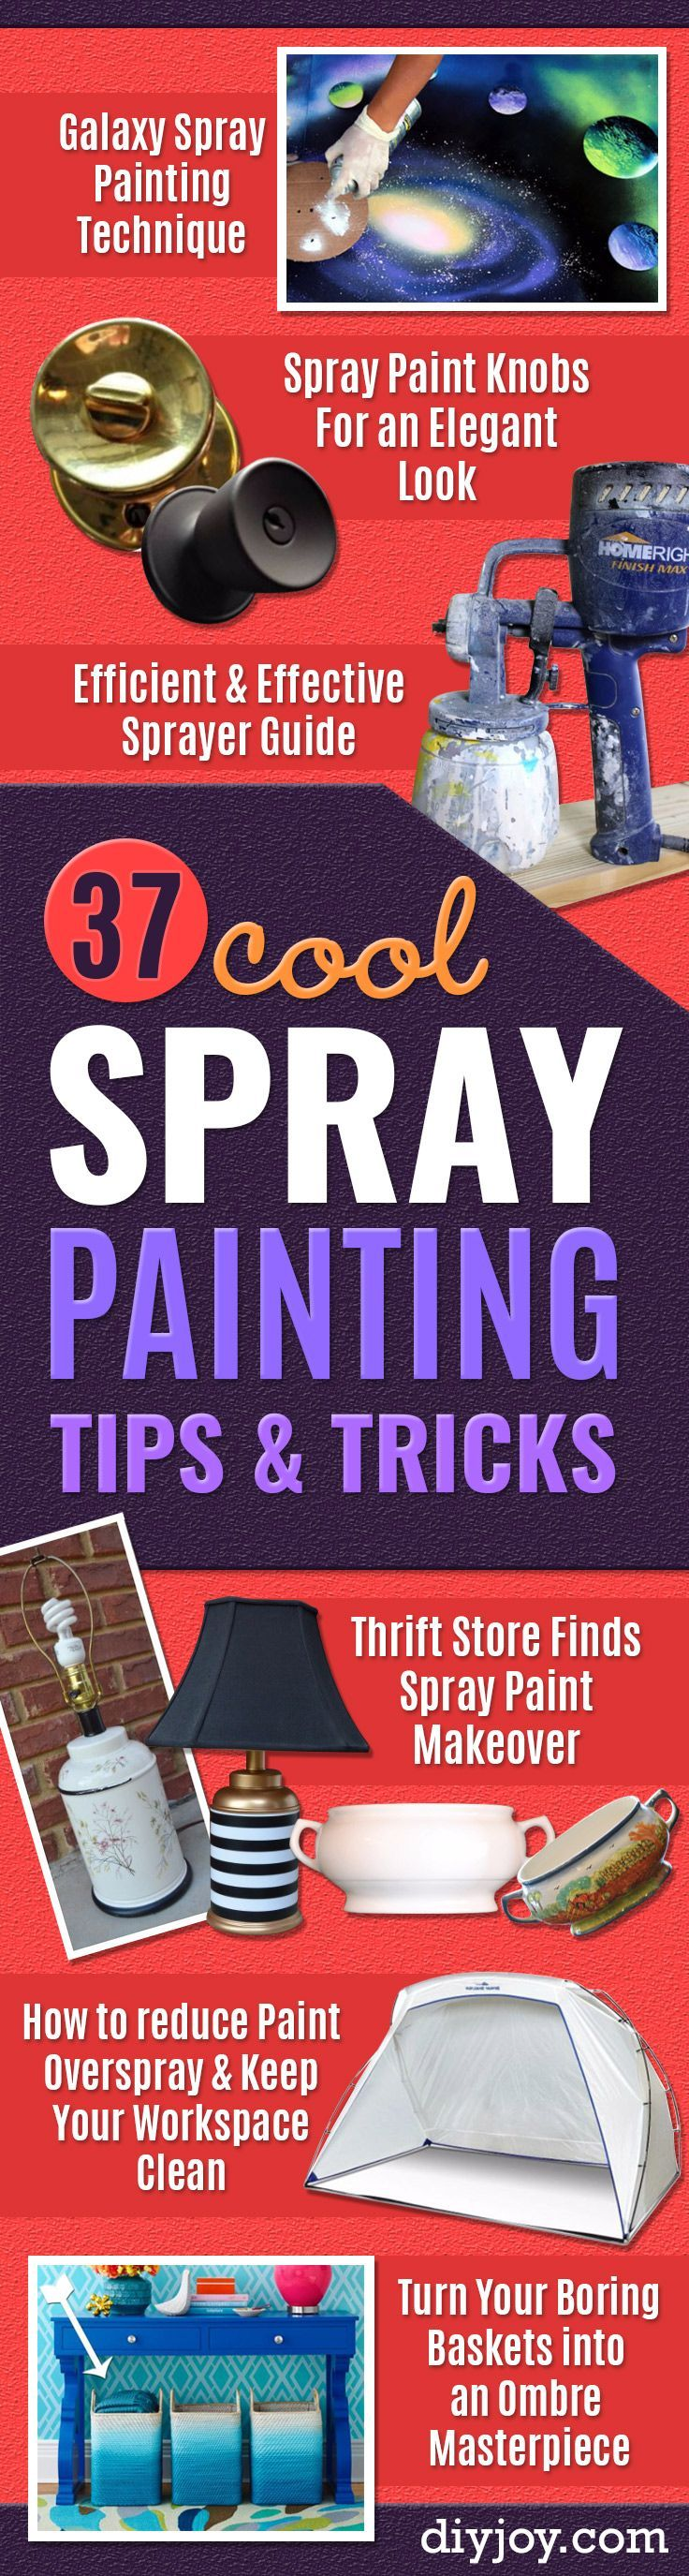 324 Best Images About Cool Diy Ideas On Pinterest Crafts